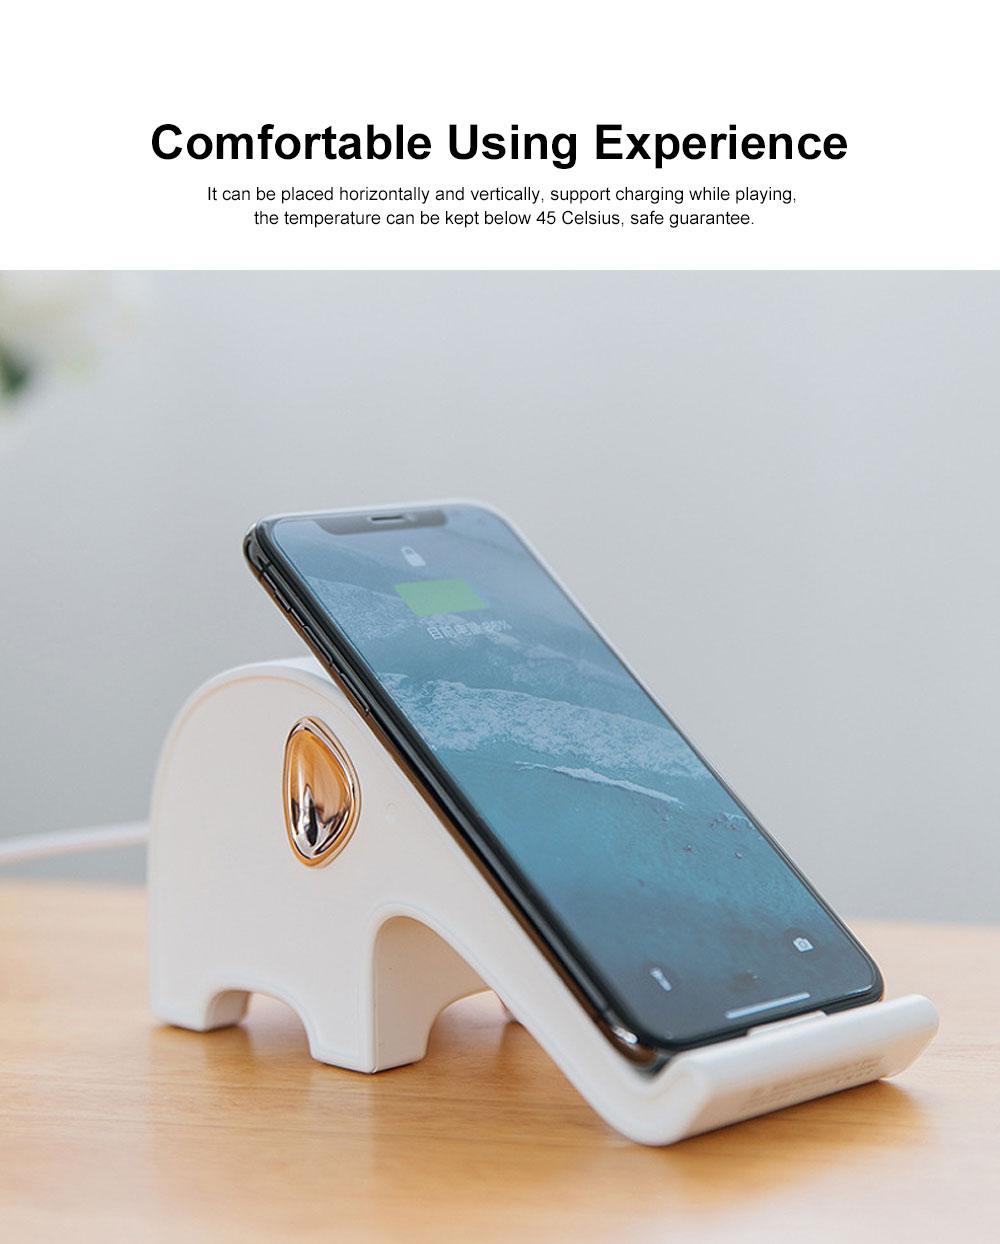 Elephant Wireless Charger Stand Fast Charging Phone Holder Set Base Kit for iphone X, iphone 8, iphone 8 Plus, Samsung, Nexus, Nokia etc 2